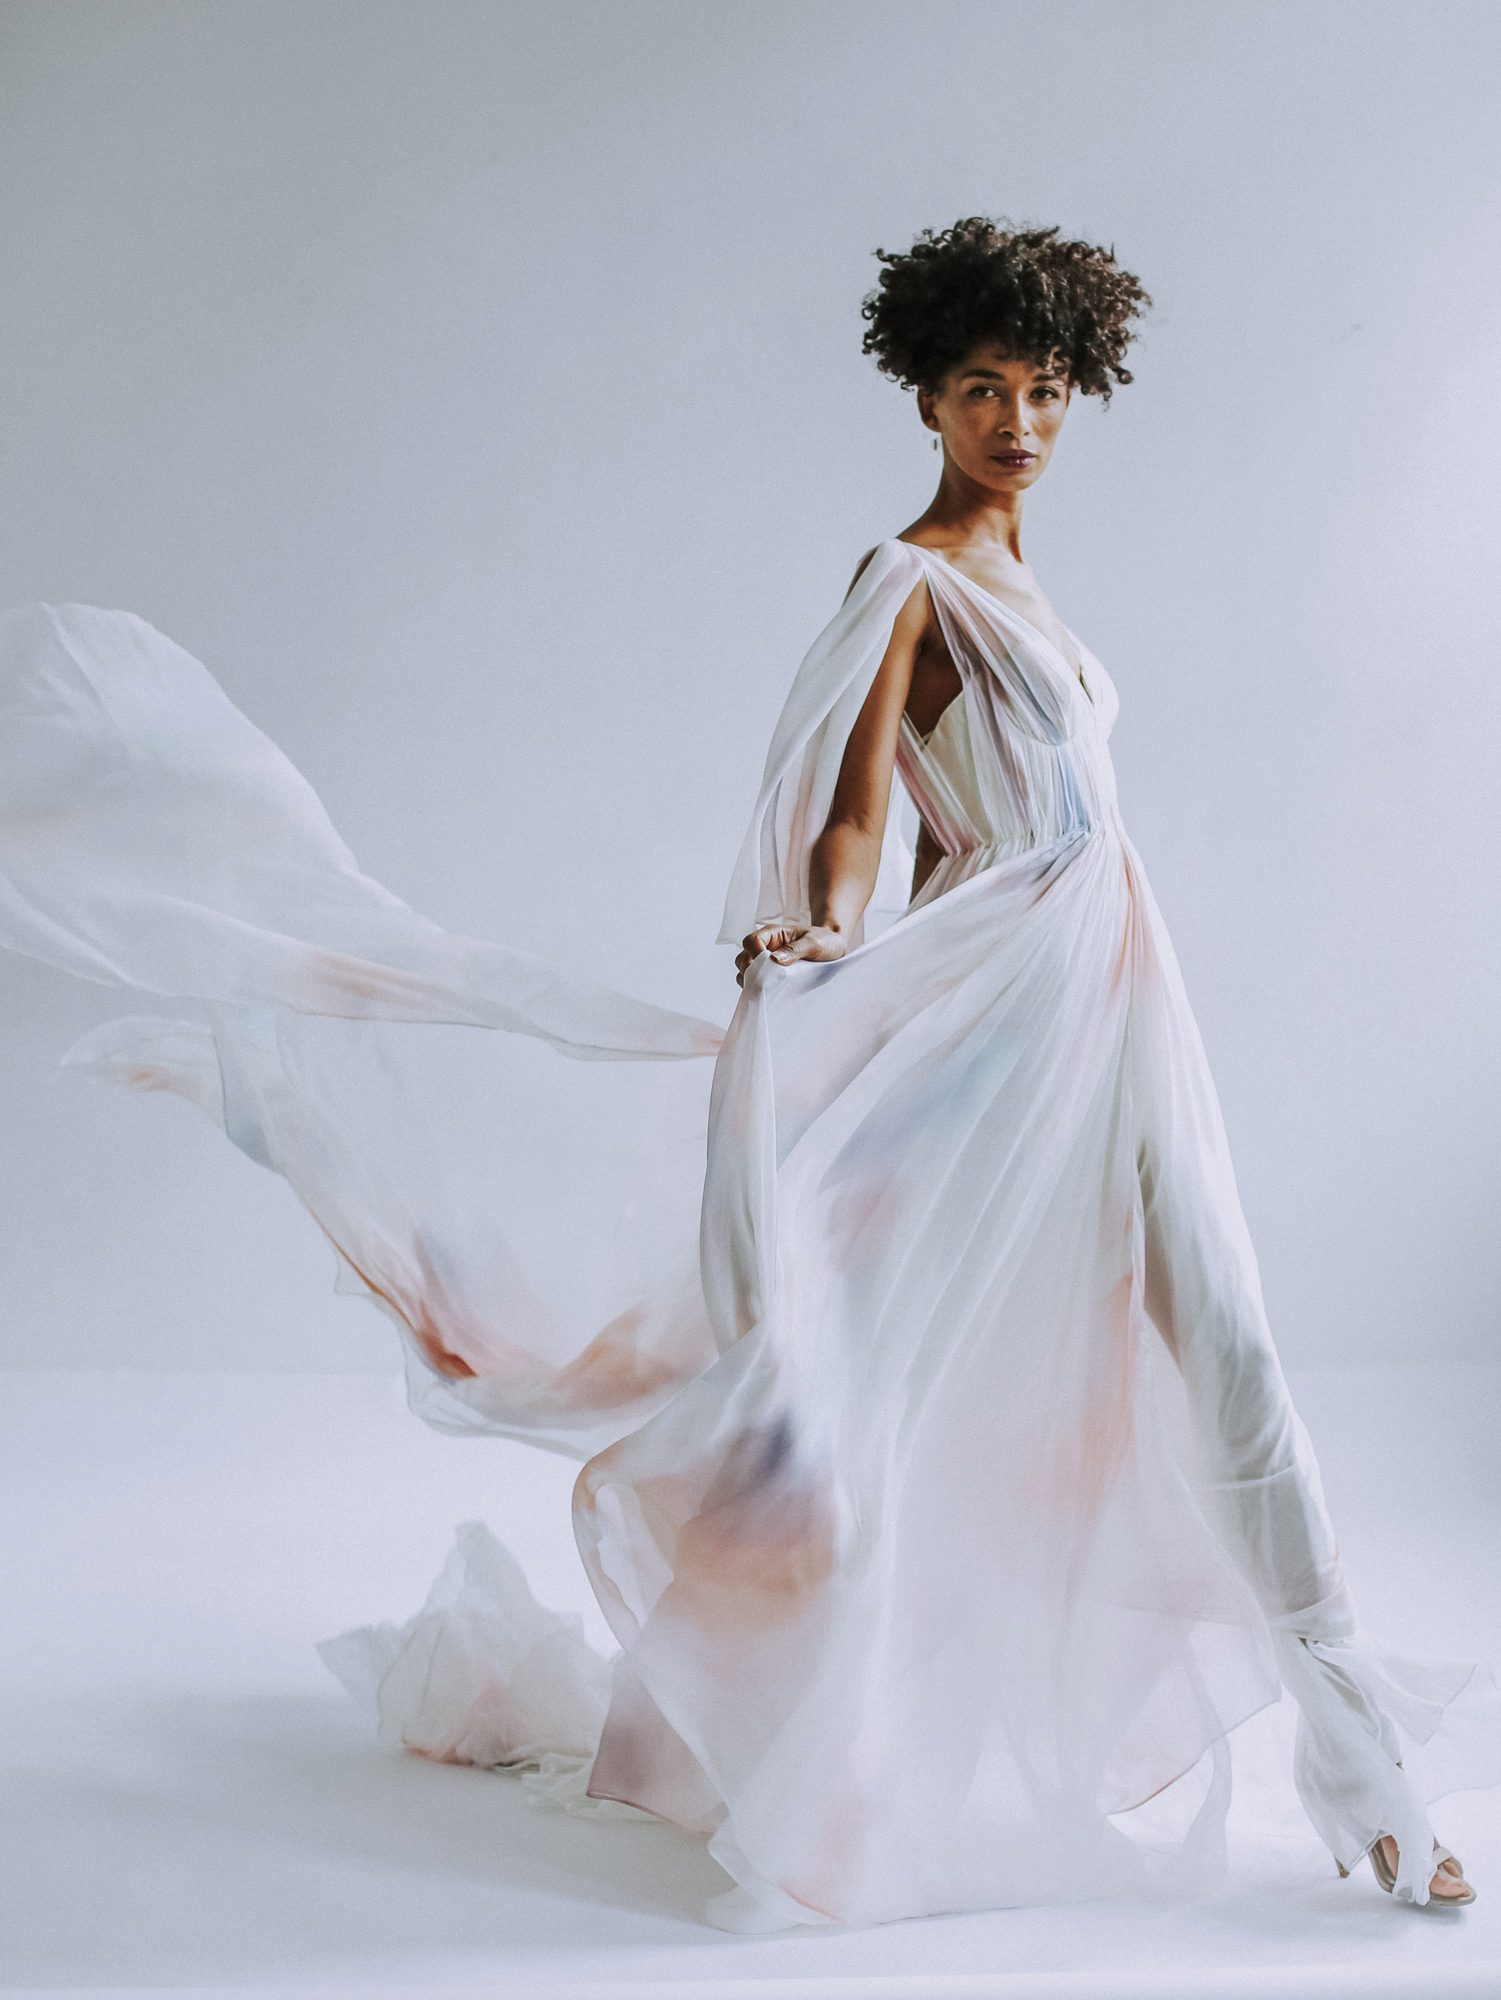 Leanne Marshall sheer wedding dress with color accents fall 2019